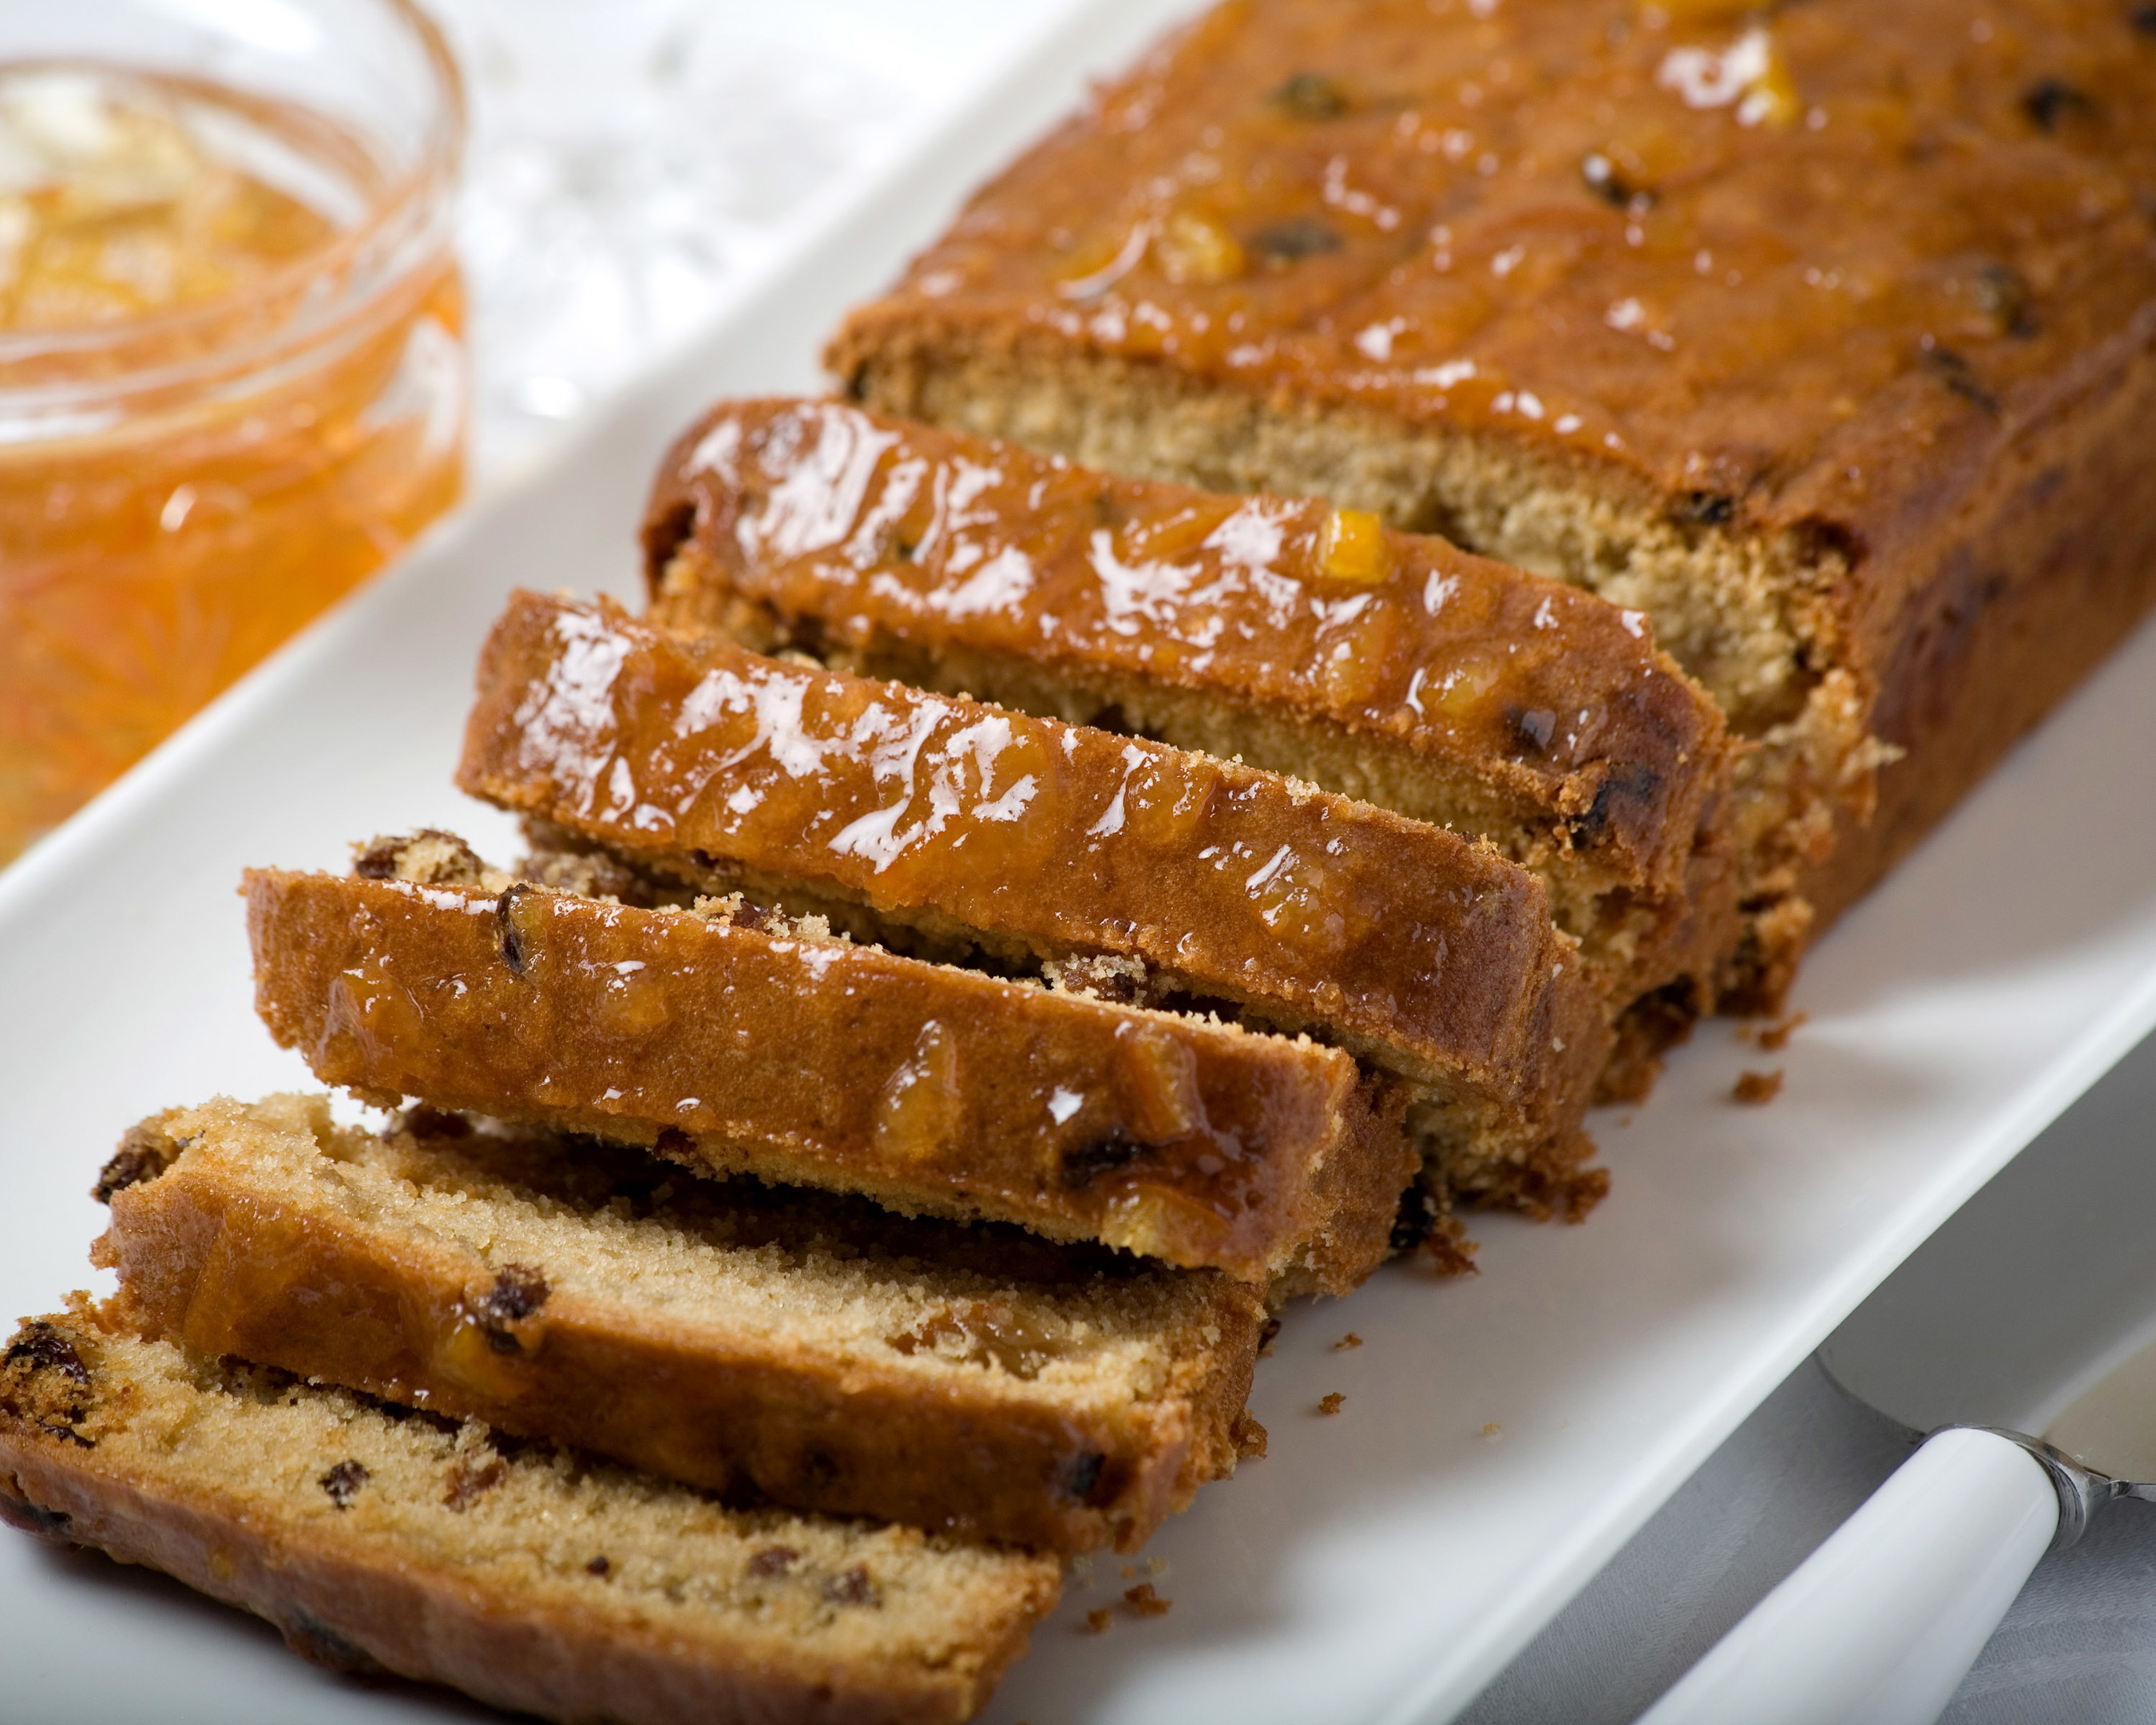 Orange Marmalade Loaf by Deans of Huntly Ltd